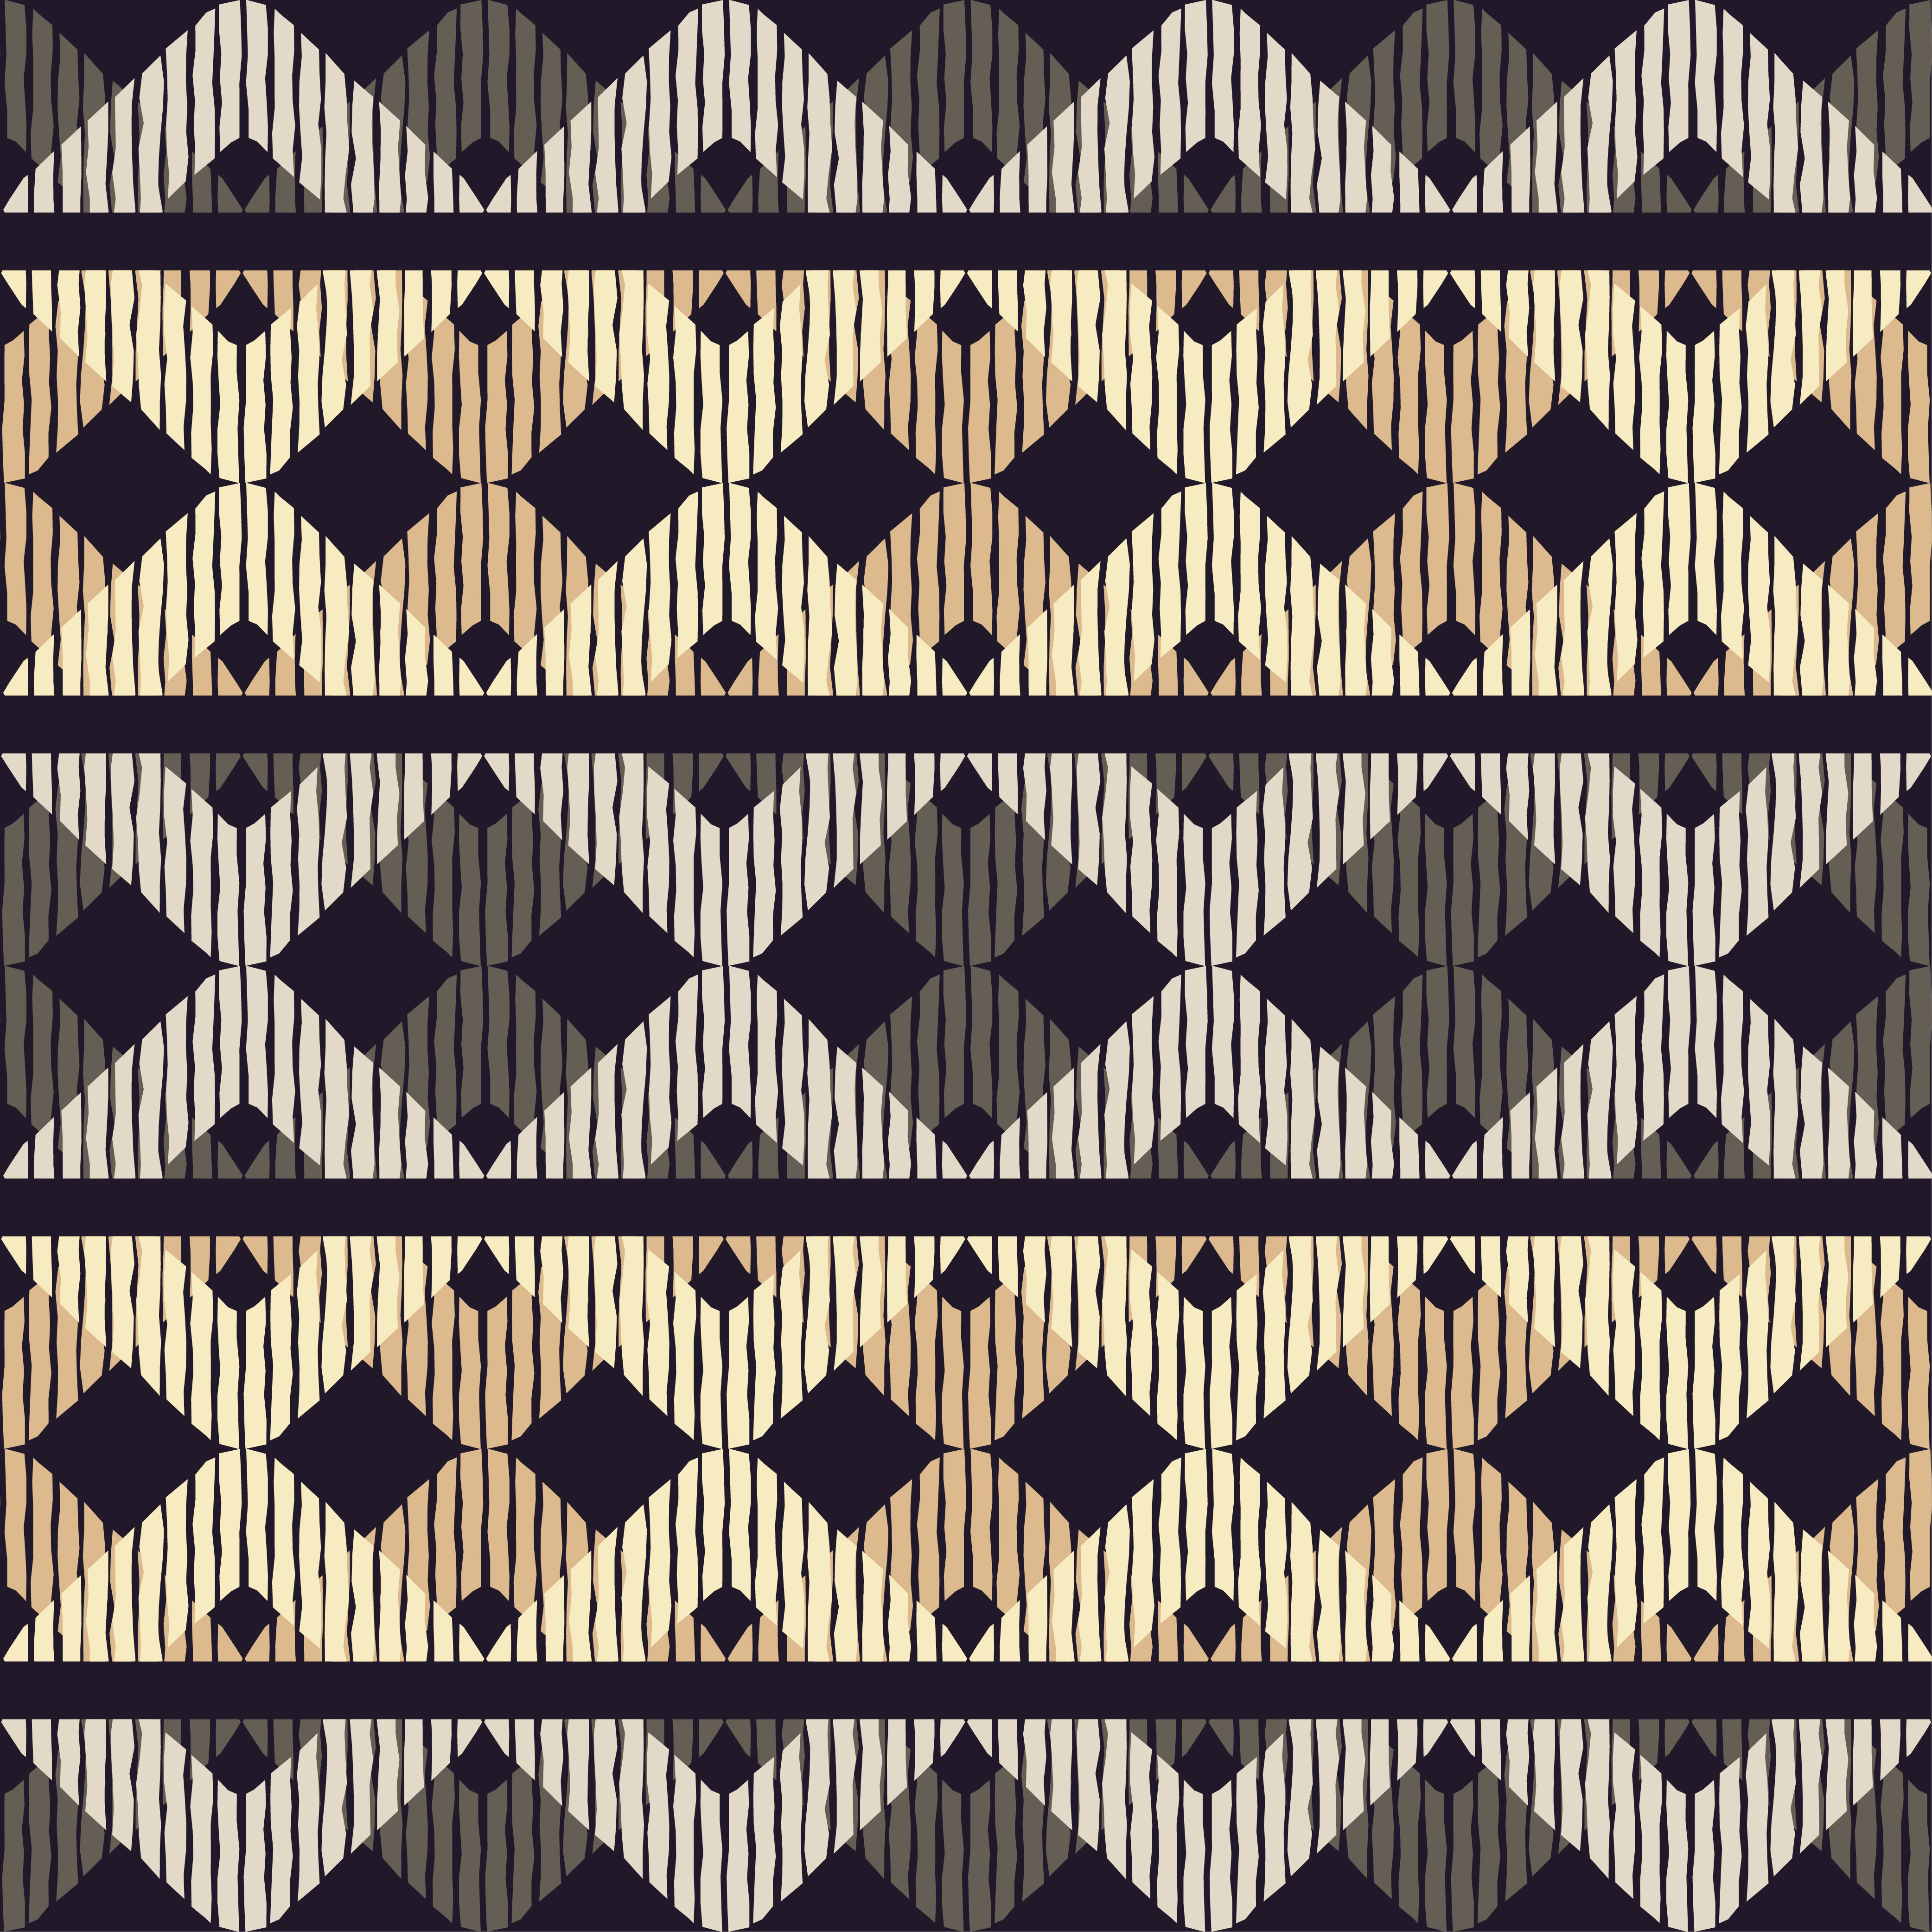 Set of 6 Ethnic boho seamless pattern. Scribble texture. Retro motif. example image 7